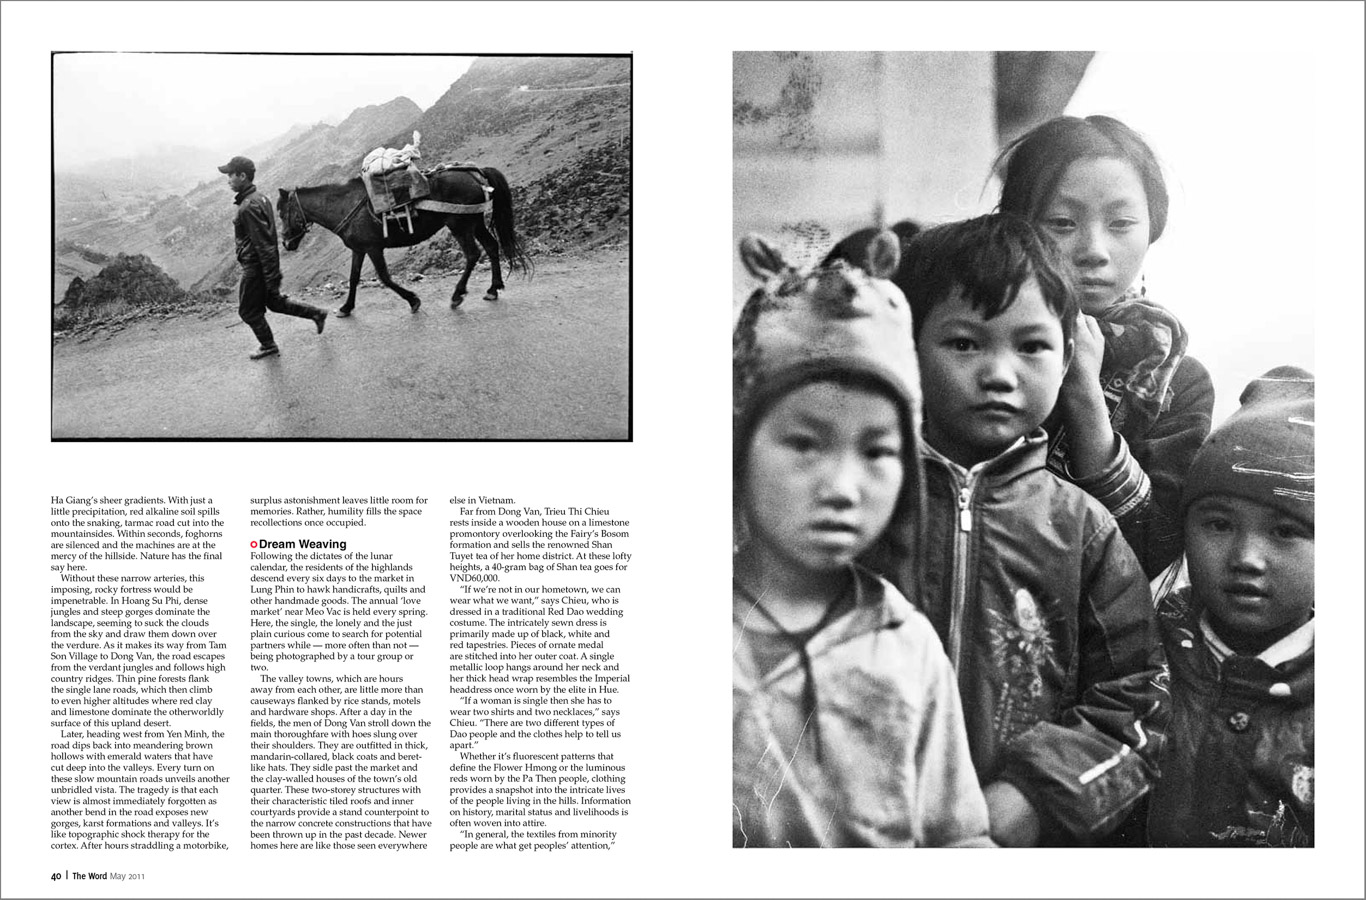 Ha-Giang-Travel-Tearsheets-3